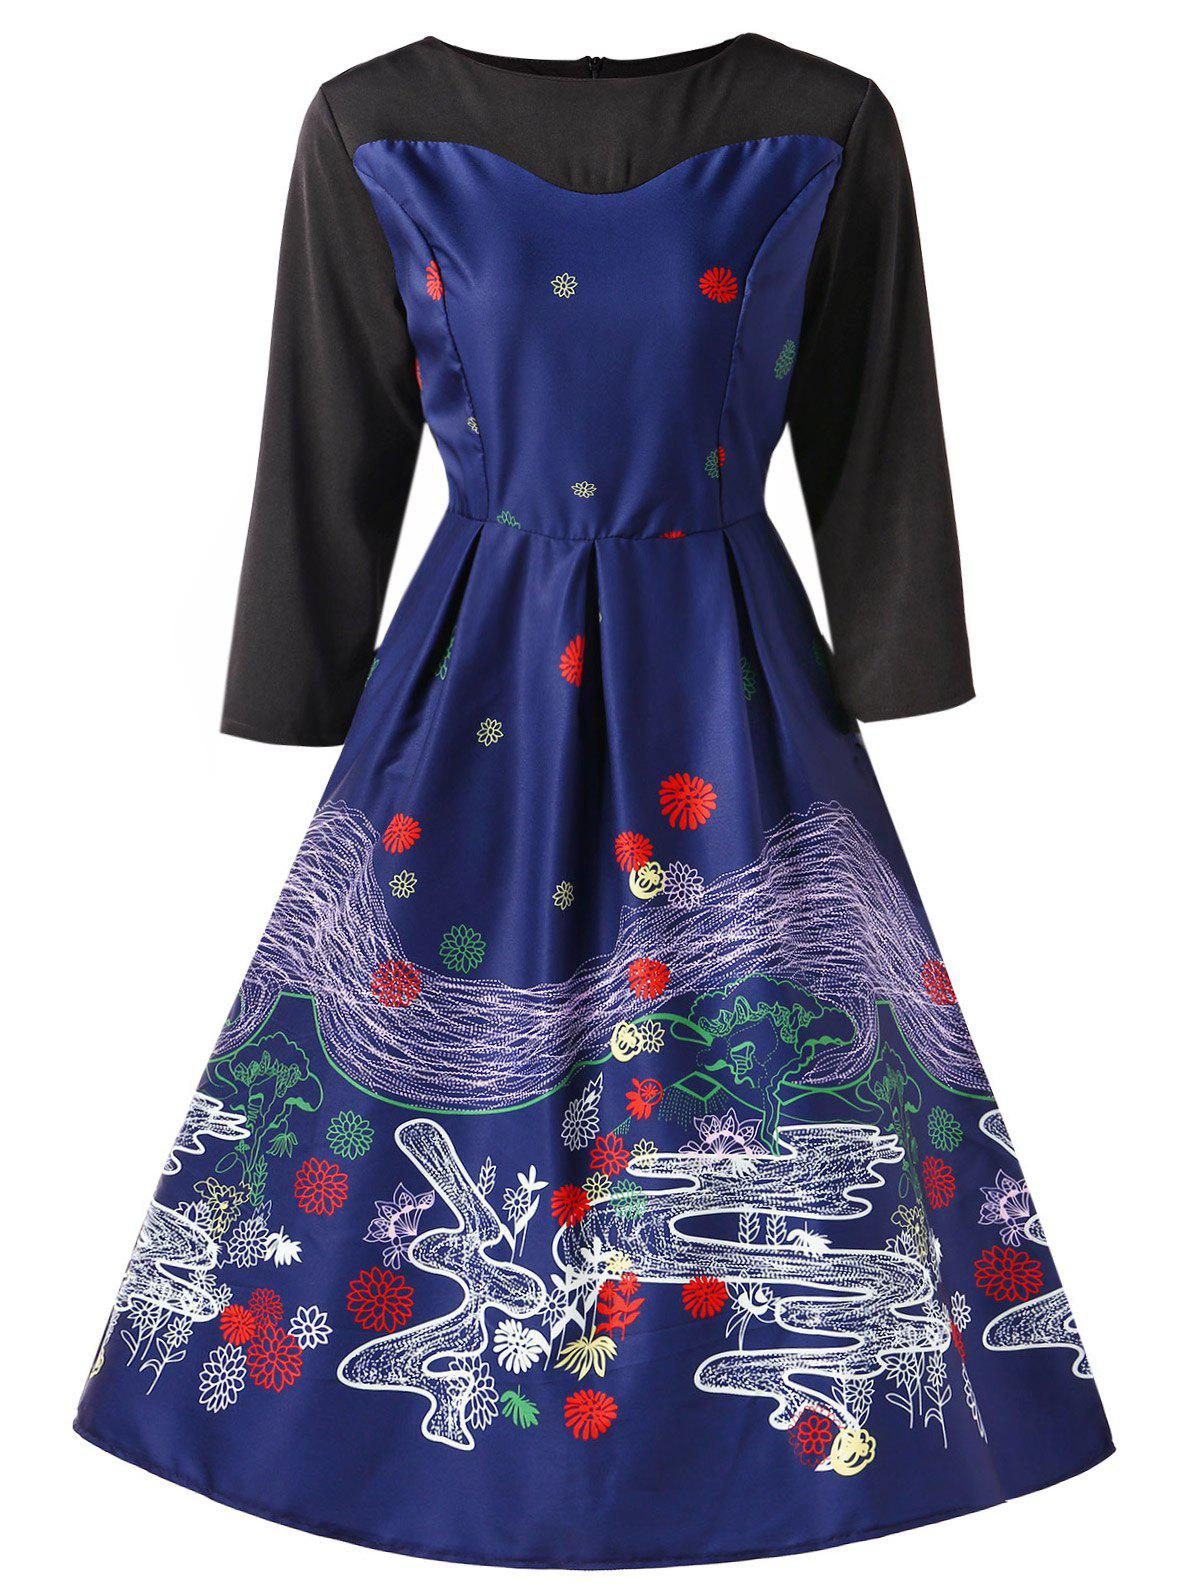 Retro Printed Fit and Flare Dress - DEEP BLUE L